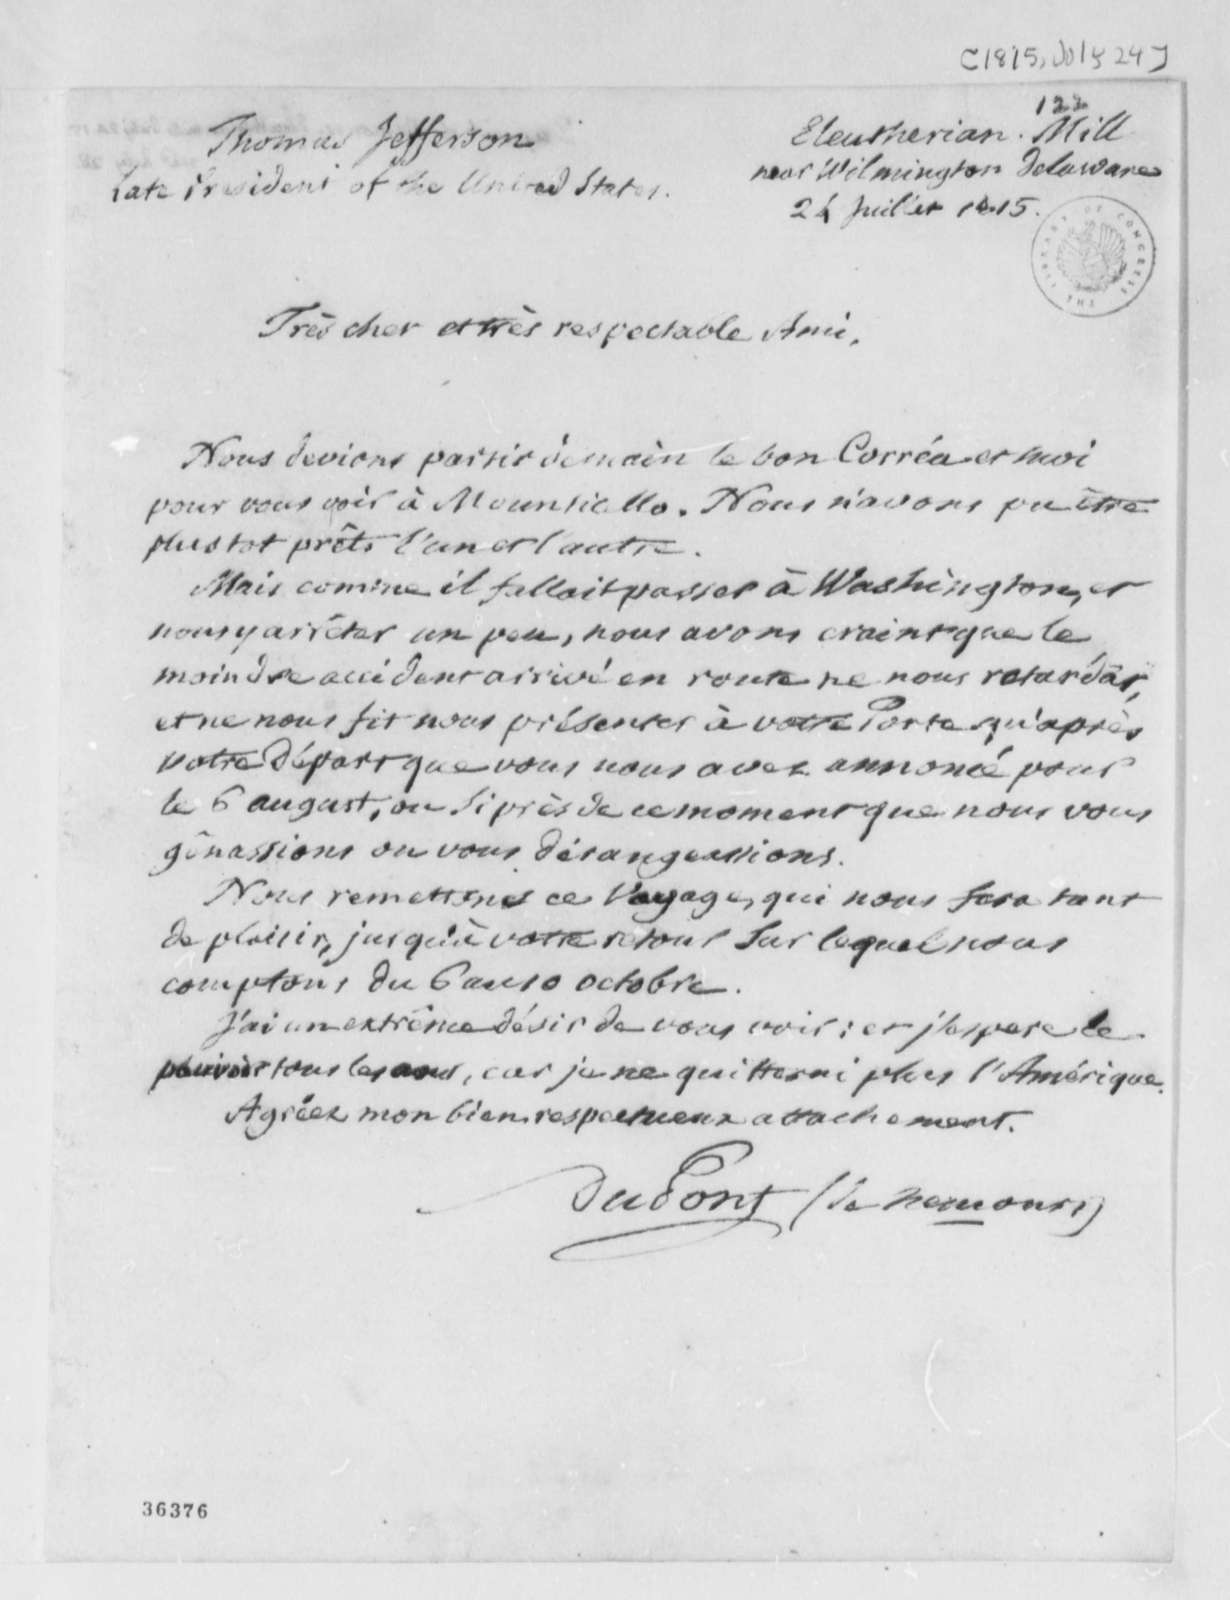 Pierre S. Dupont de Nemours to Thomas Jefferson, July 24, 1815, in French